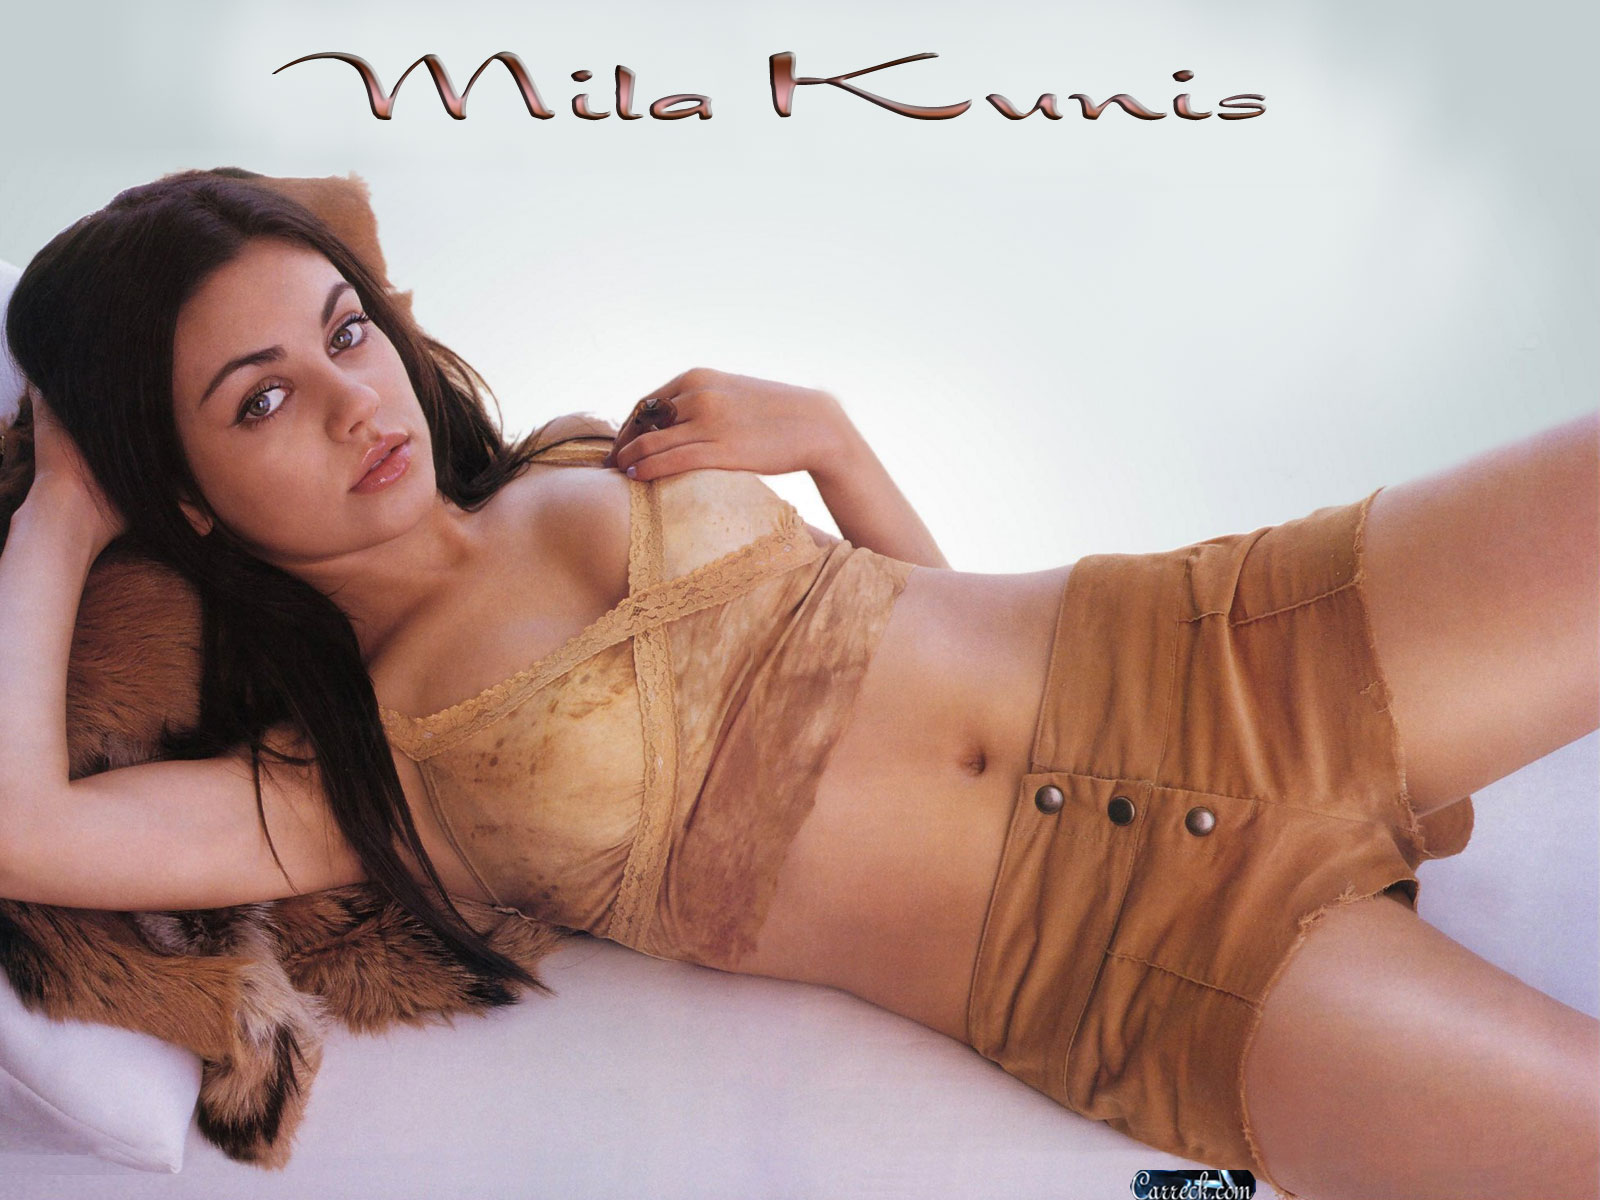 Обои of Mila Kunis for Фаны of Мила Кунис 34831456.